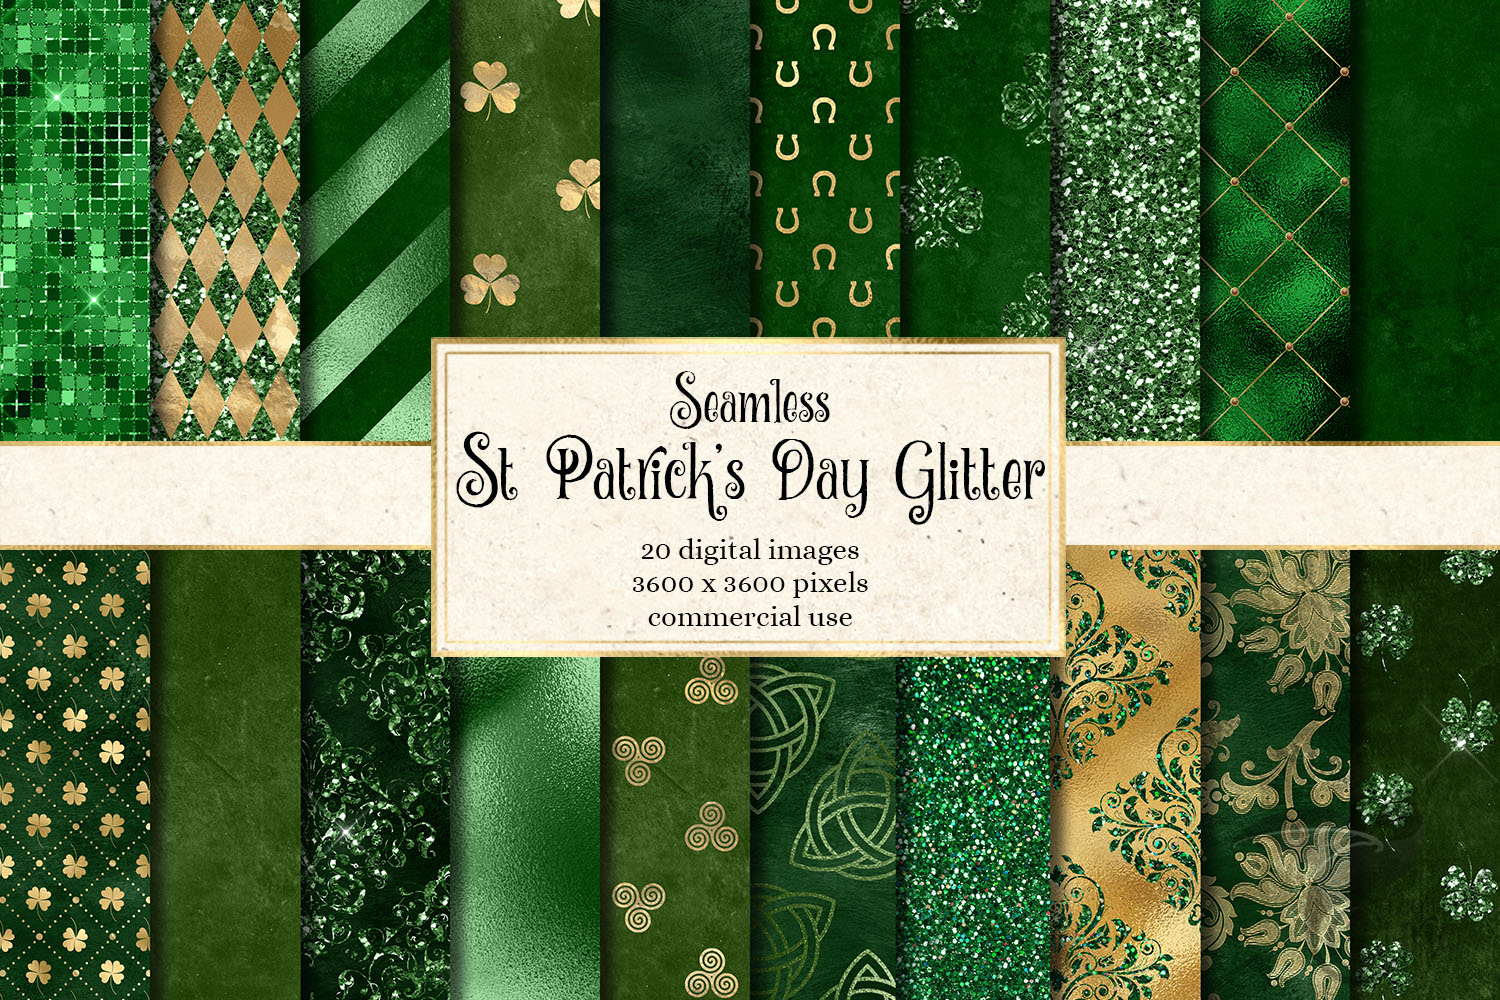 St Patrick's Day Glitter Digital Paper example image 1